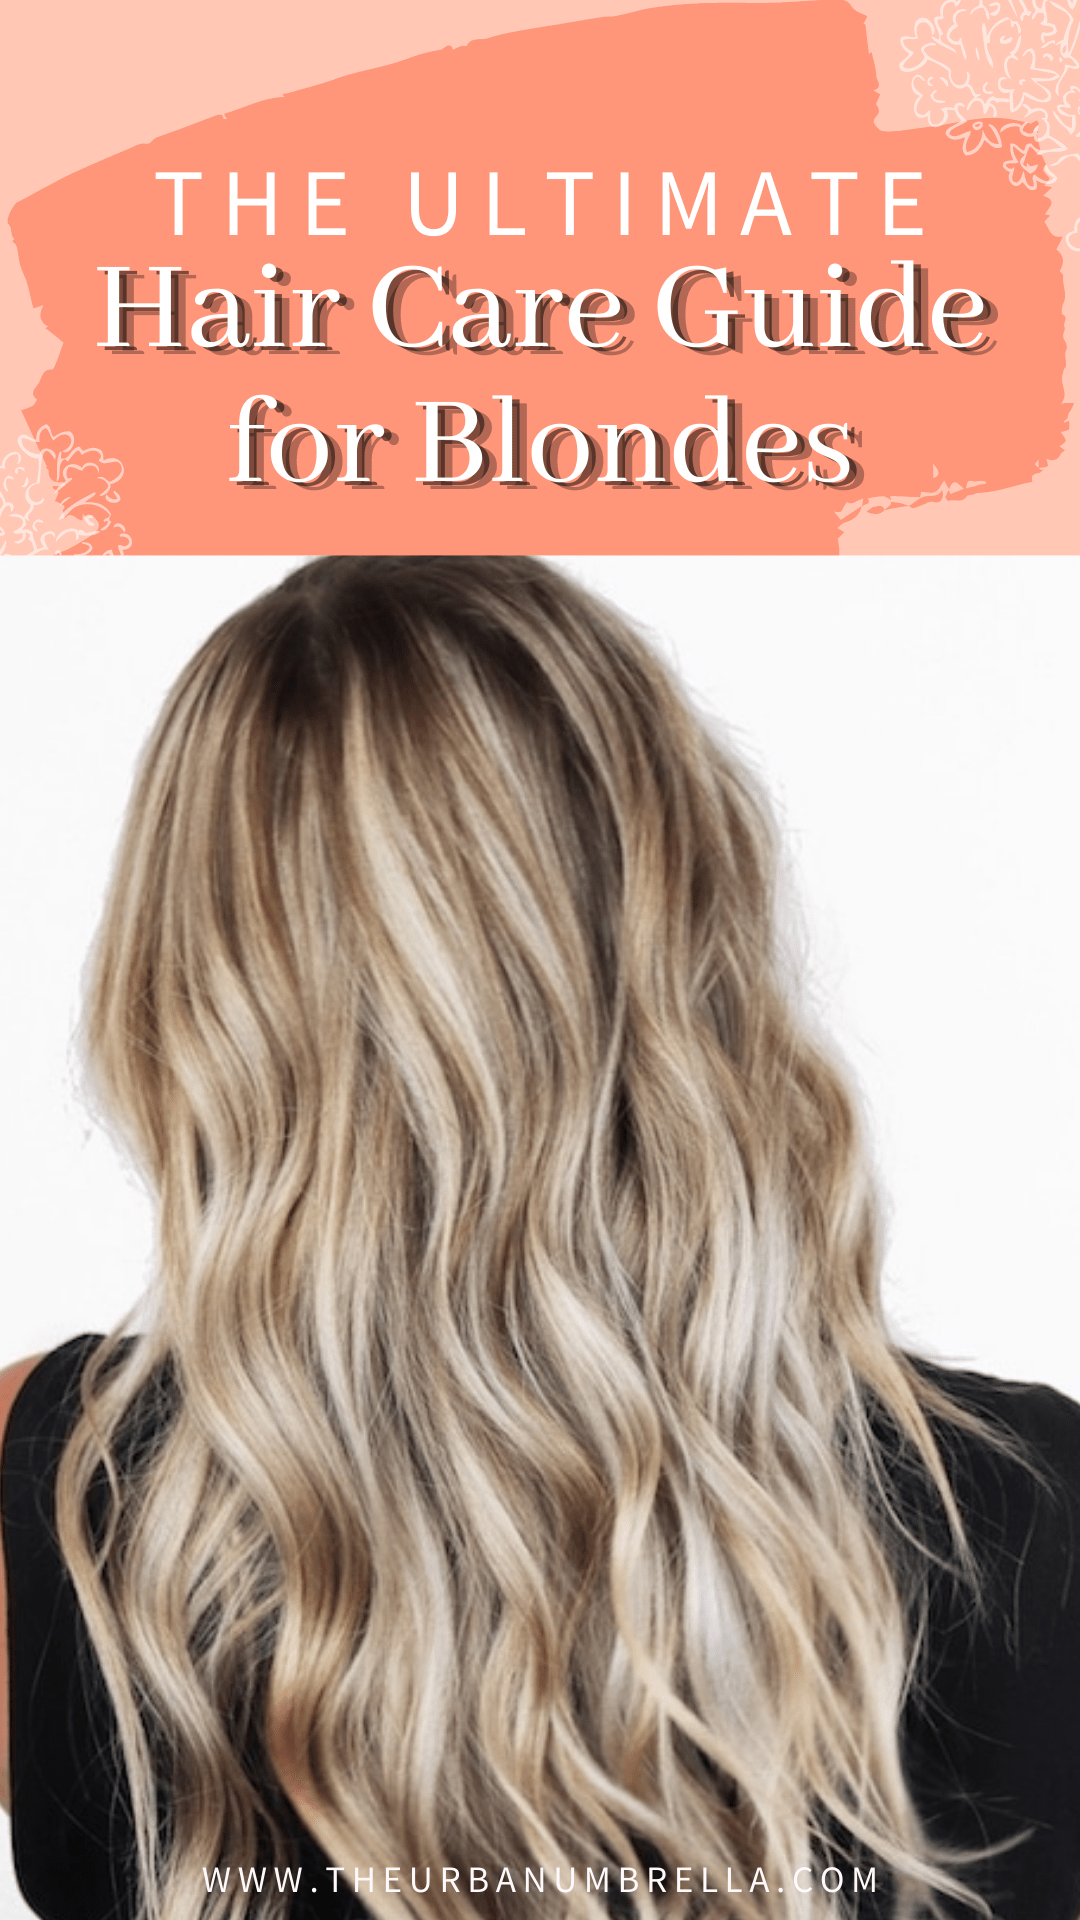 The Ultimate Hair Care Guide for Blondes